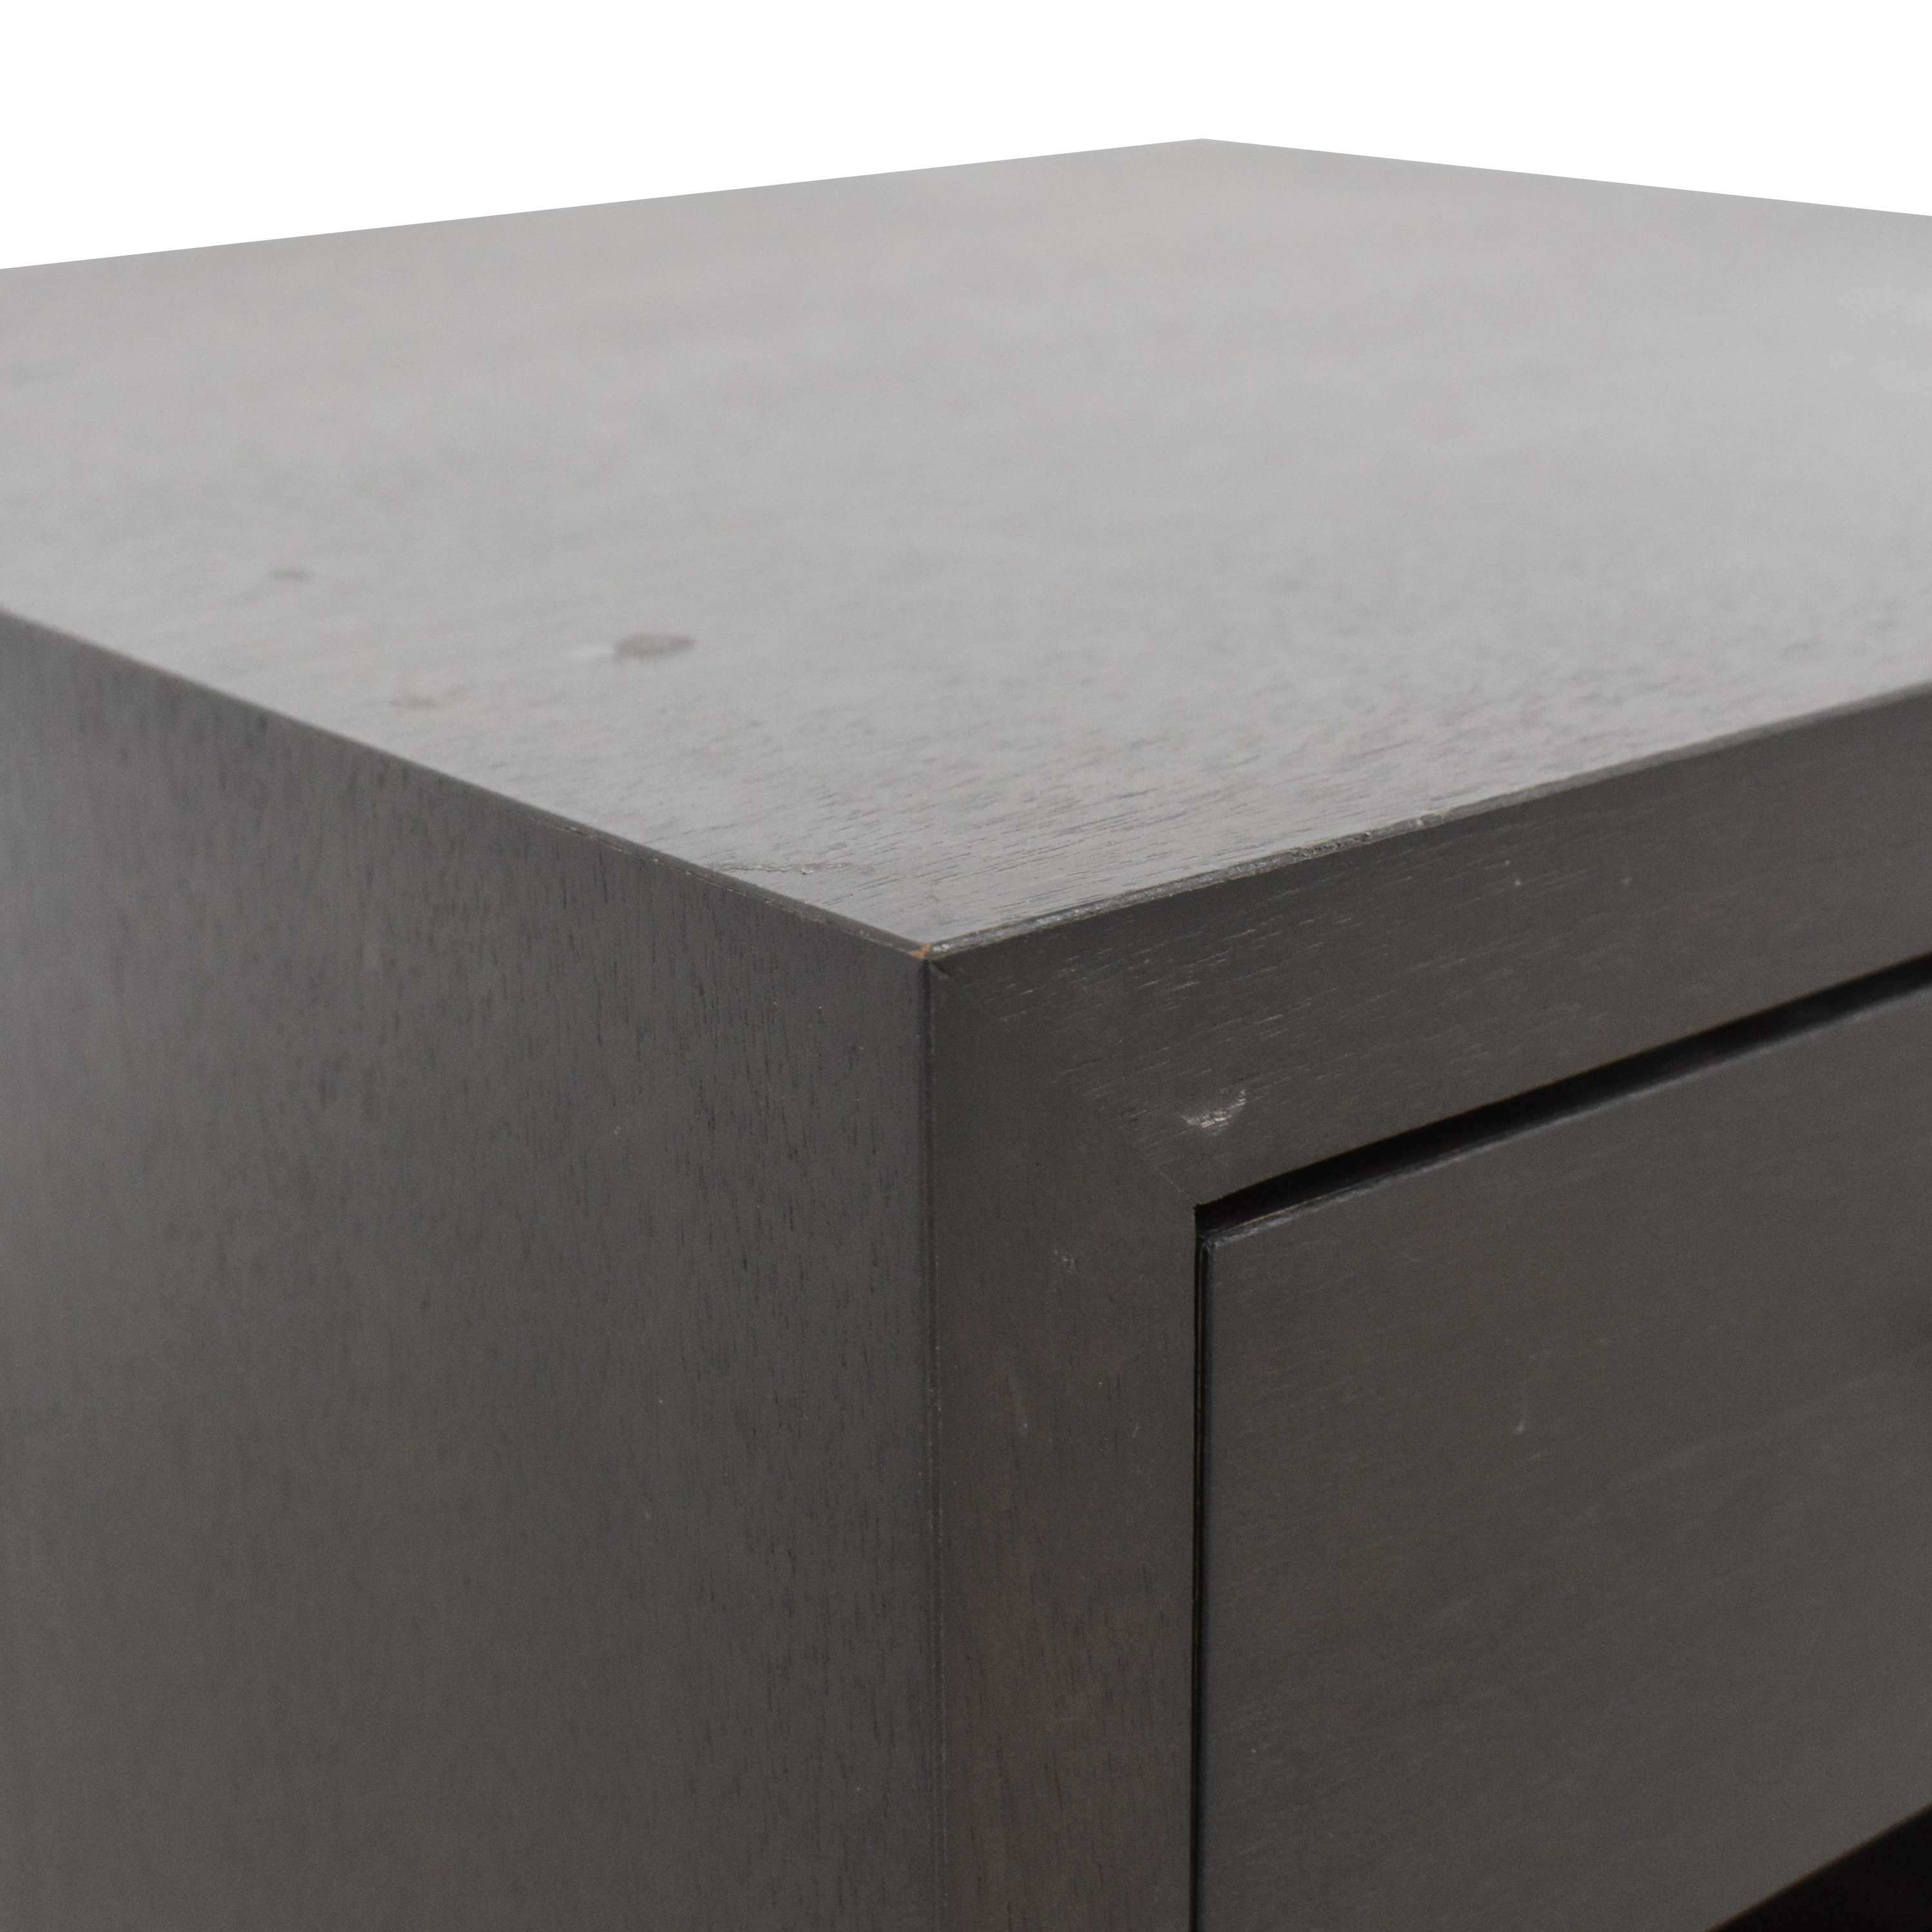 Domus Design Center Domus Design Center Modern Nightstand price